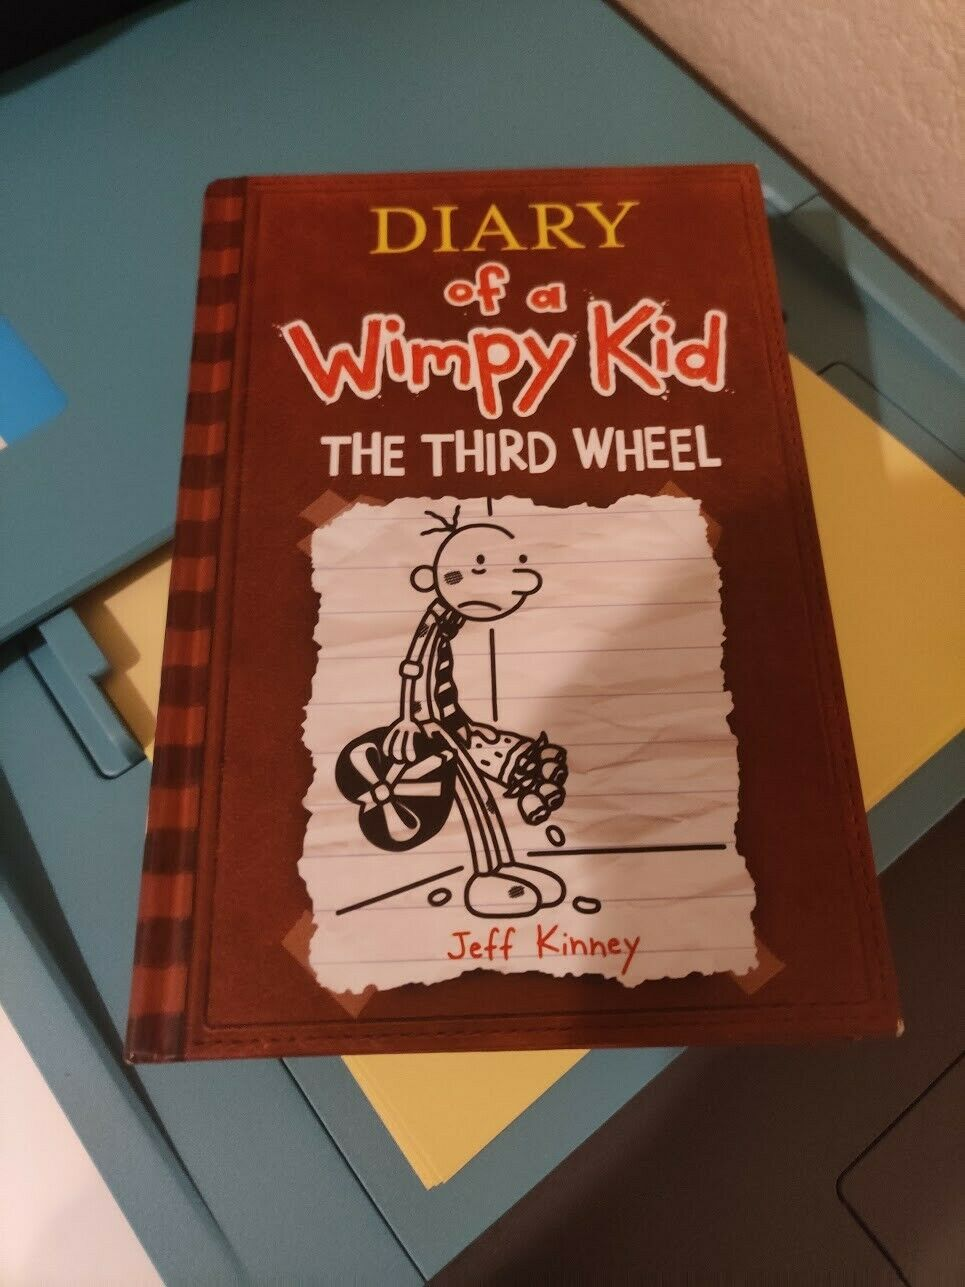 Diary Of A Wimpy Kid Ser The Third Wheel By Jeff Kinney 2012 Hardcover For Sale Online Ebay